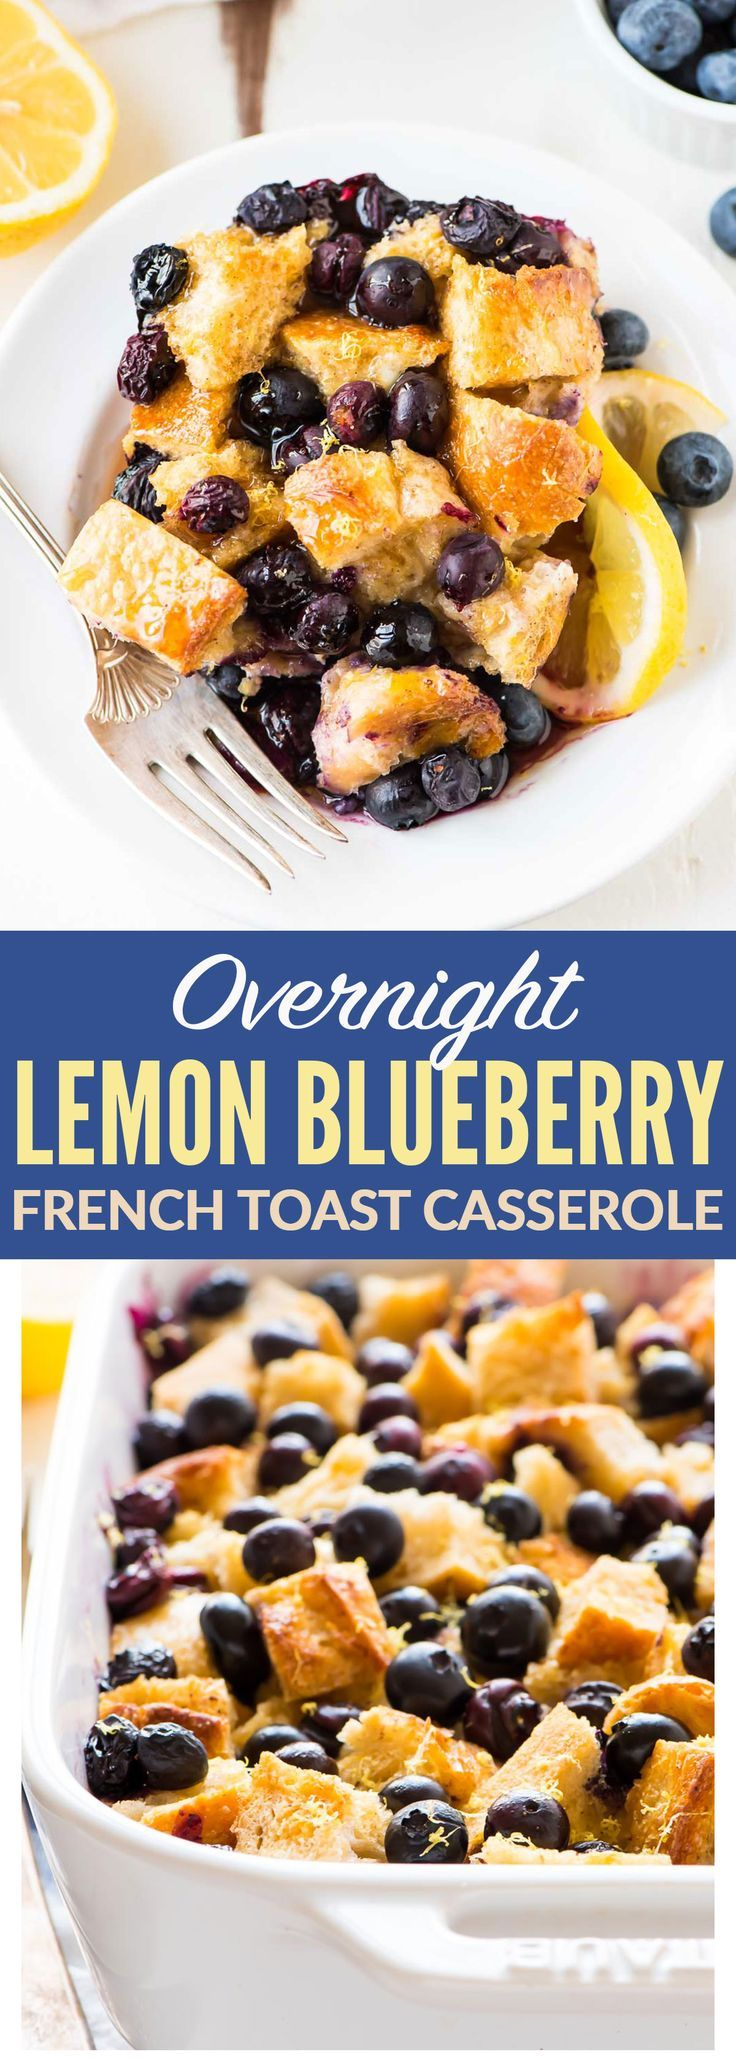 Best Overnight Lemon Blueberry French Toast Casserole Easy, Makeahead  Brunch Recipe That